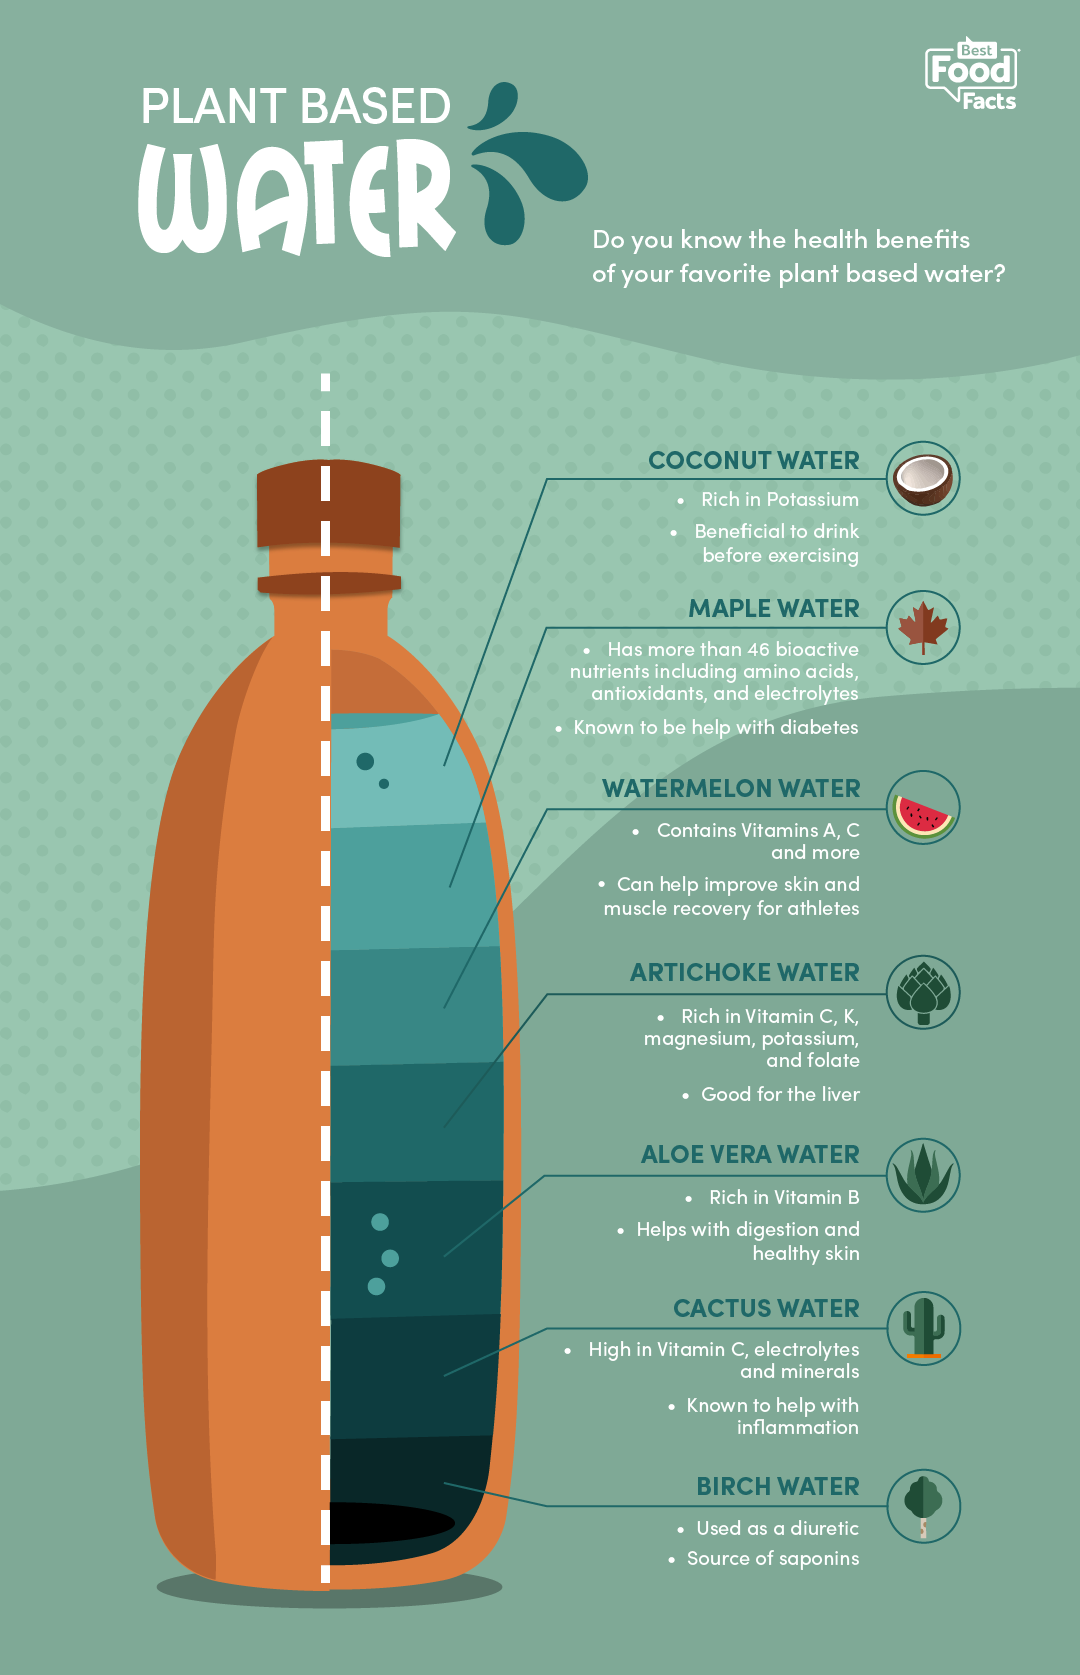 plant waters offer cool alternative | bestfoodfacts